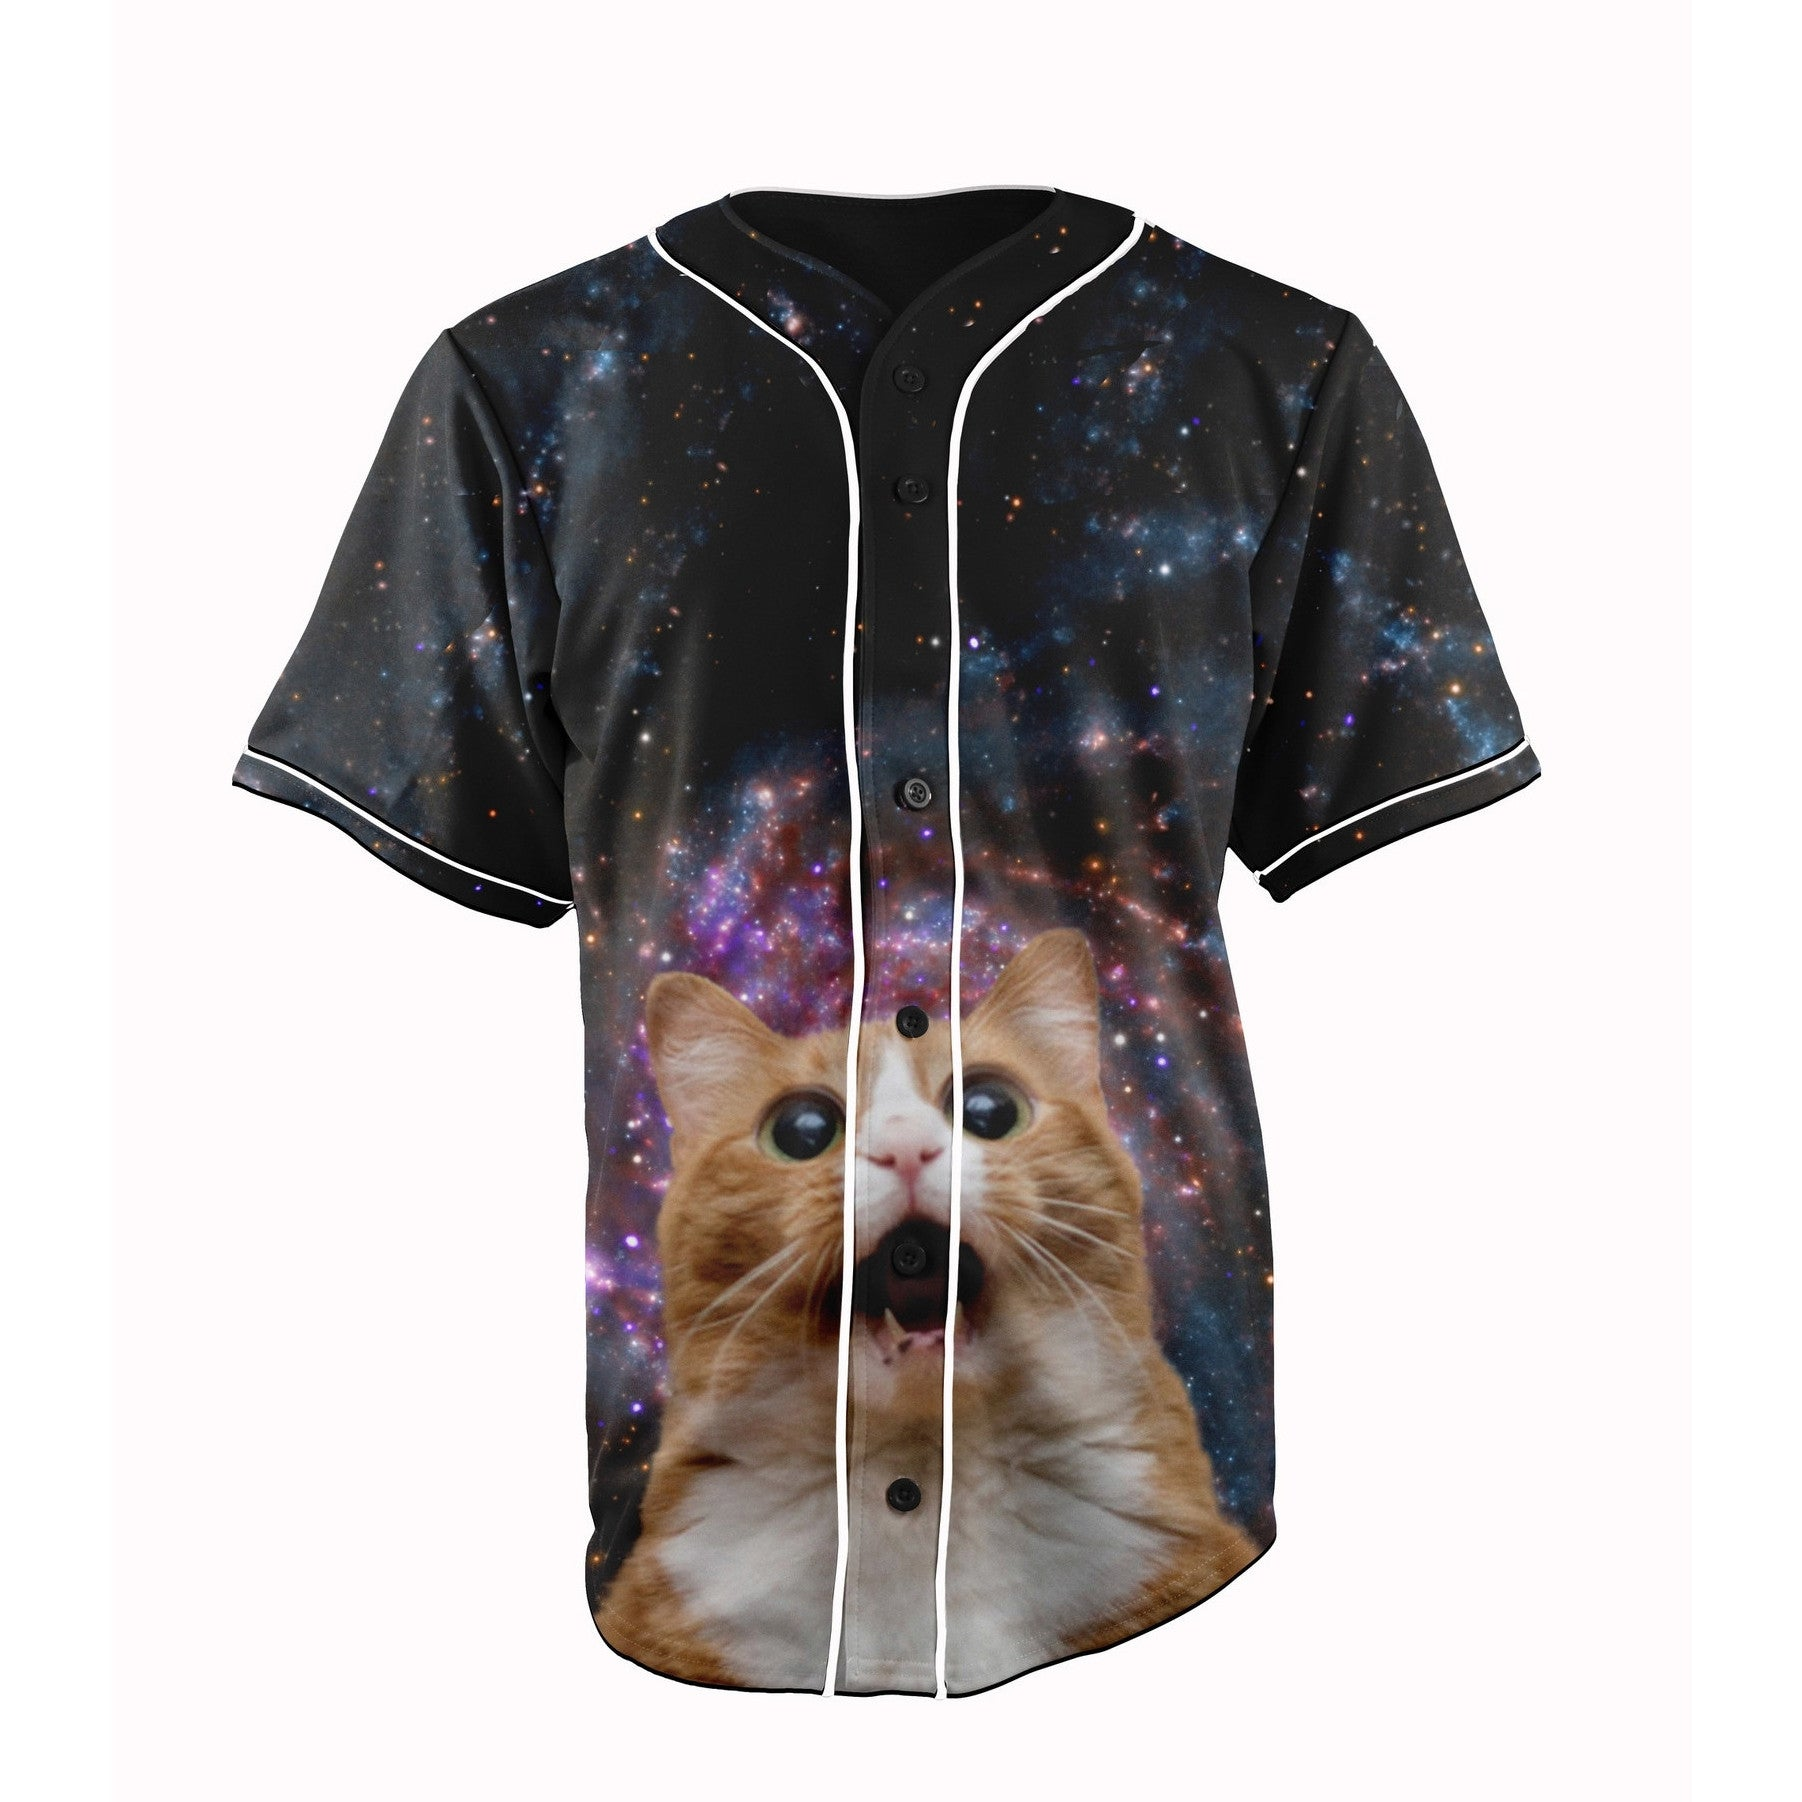 Surprised Space Cat jersey